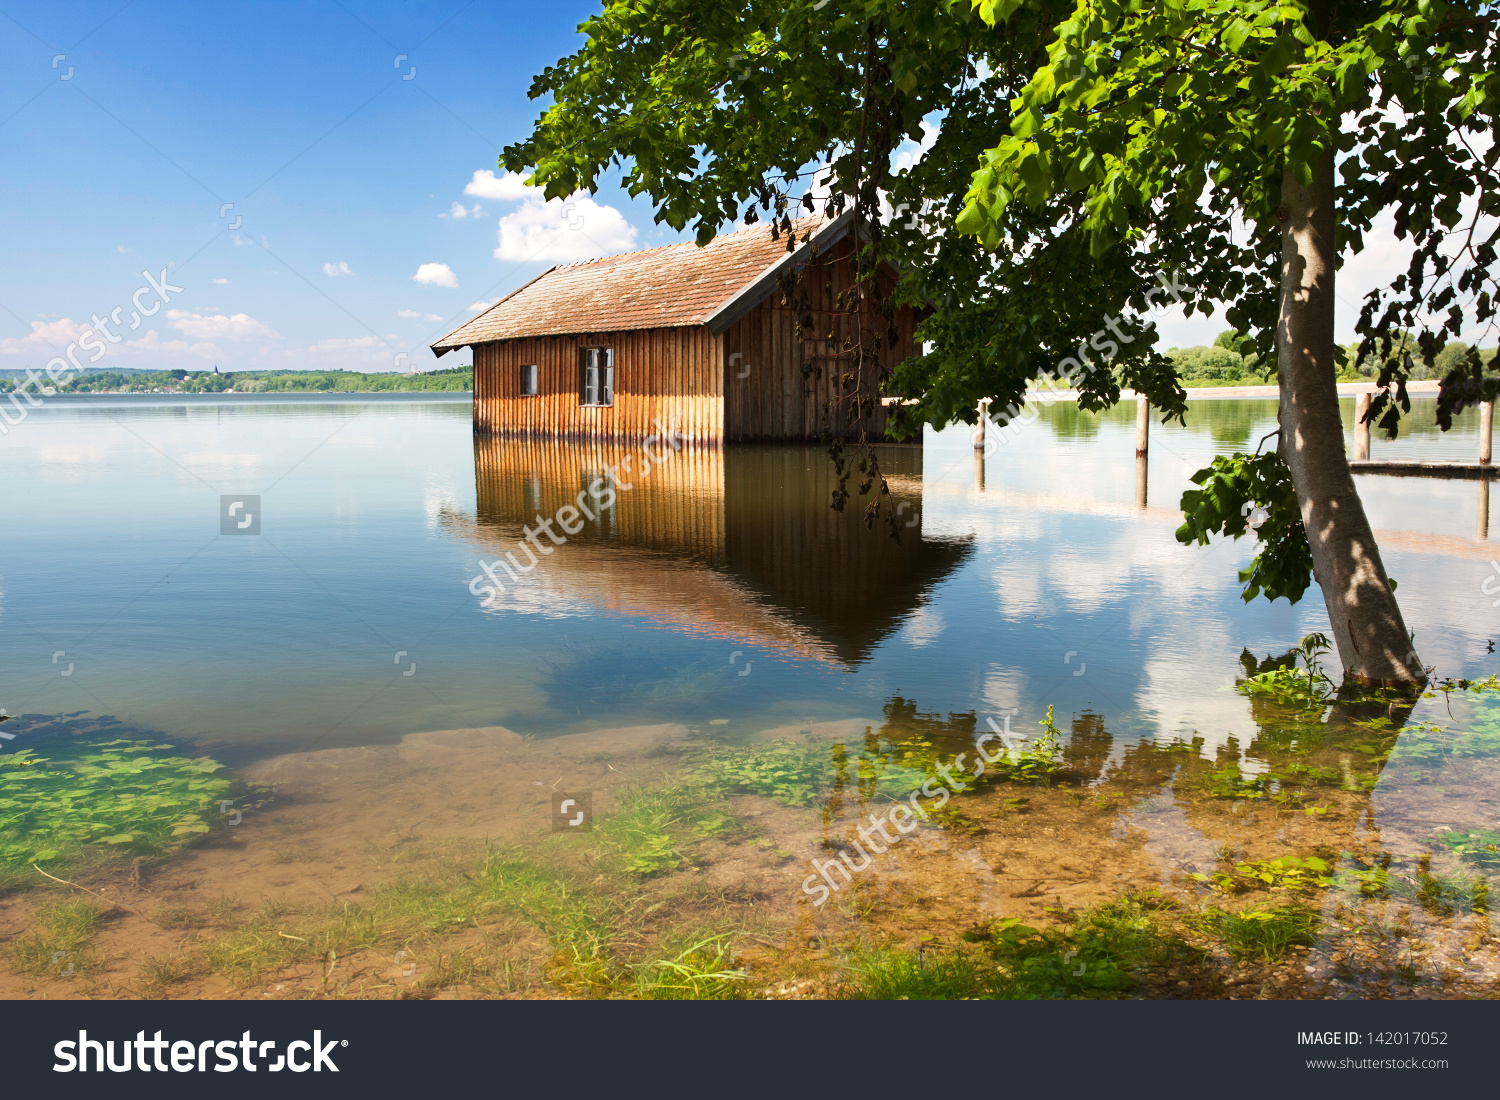 Old Wooden Fisherman House Lake Scenic Stock Photo 142017052.